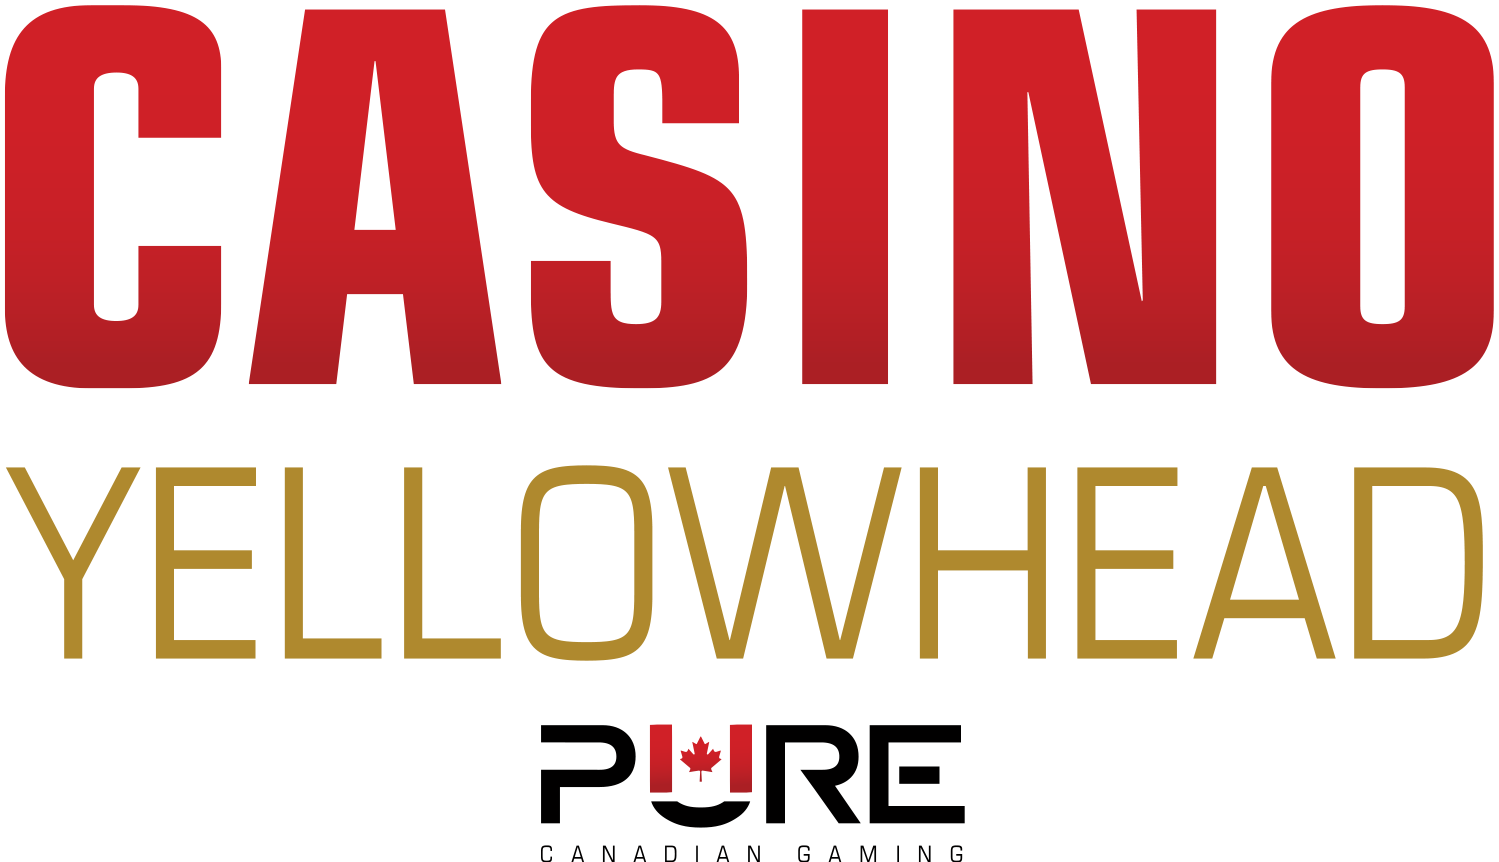 Friends of Rotary - Casino Yellowhead - Logo